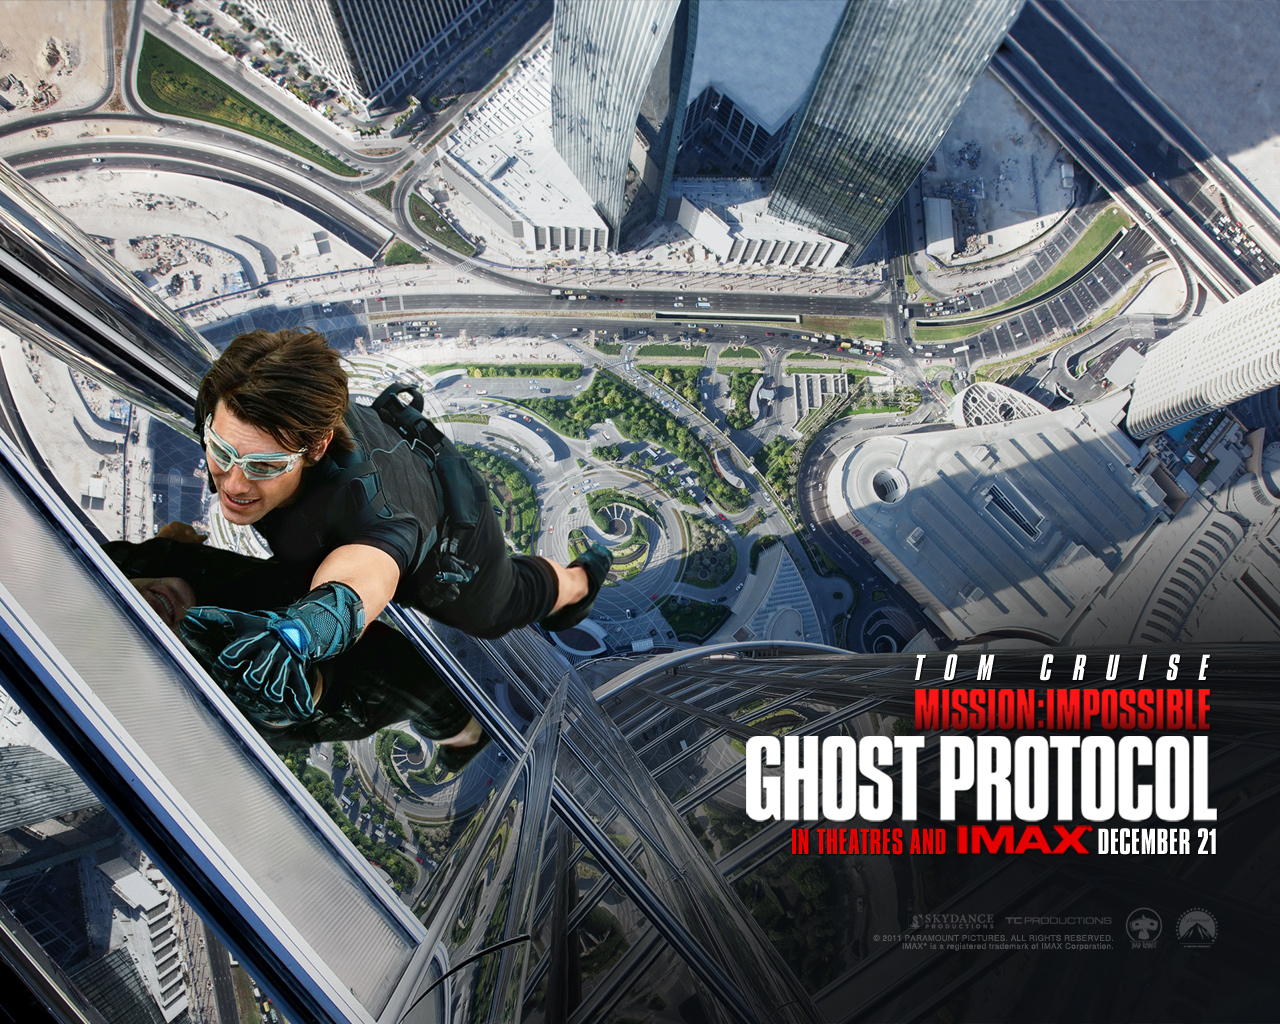 https://i0.wp.com/images5.fanpop.com/image/photos/27100000/Mission-Impossible-Ghost-Protocol-Wallpaper-mission-impossible-ghost-protocol-27184687-1280-1024.jpg